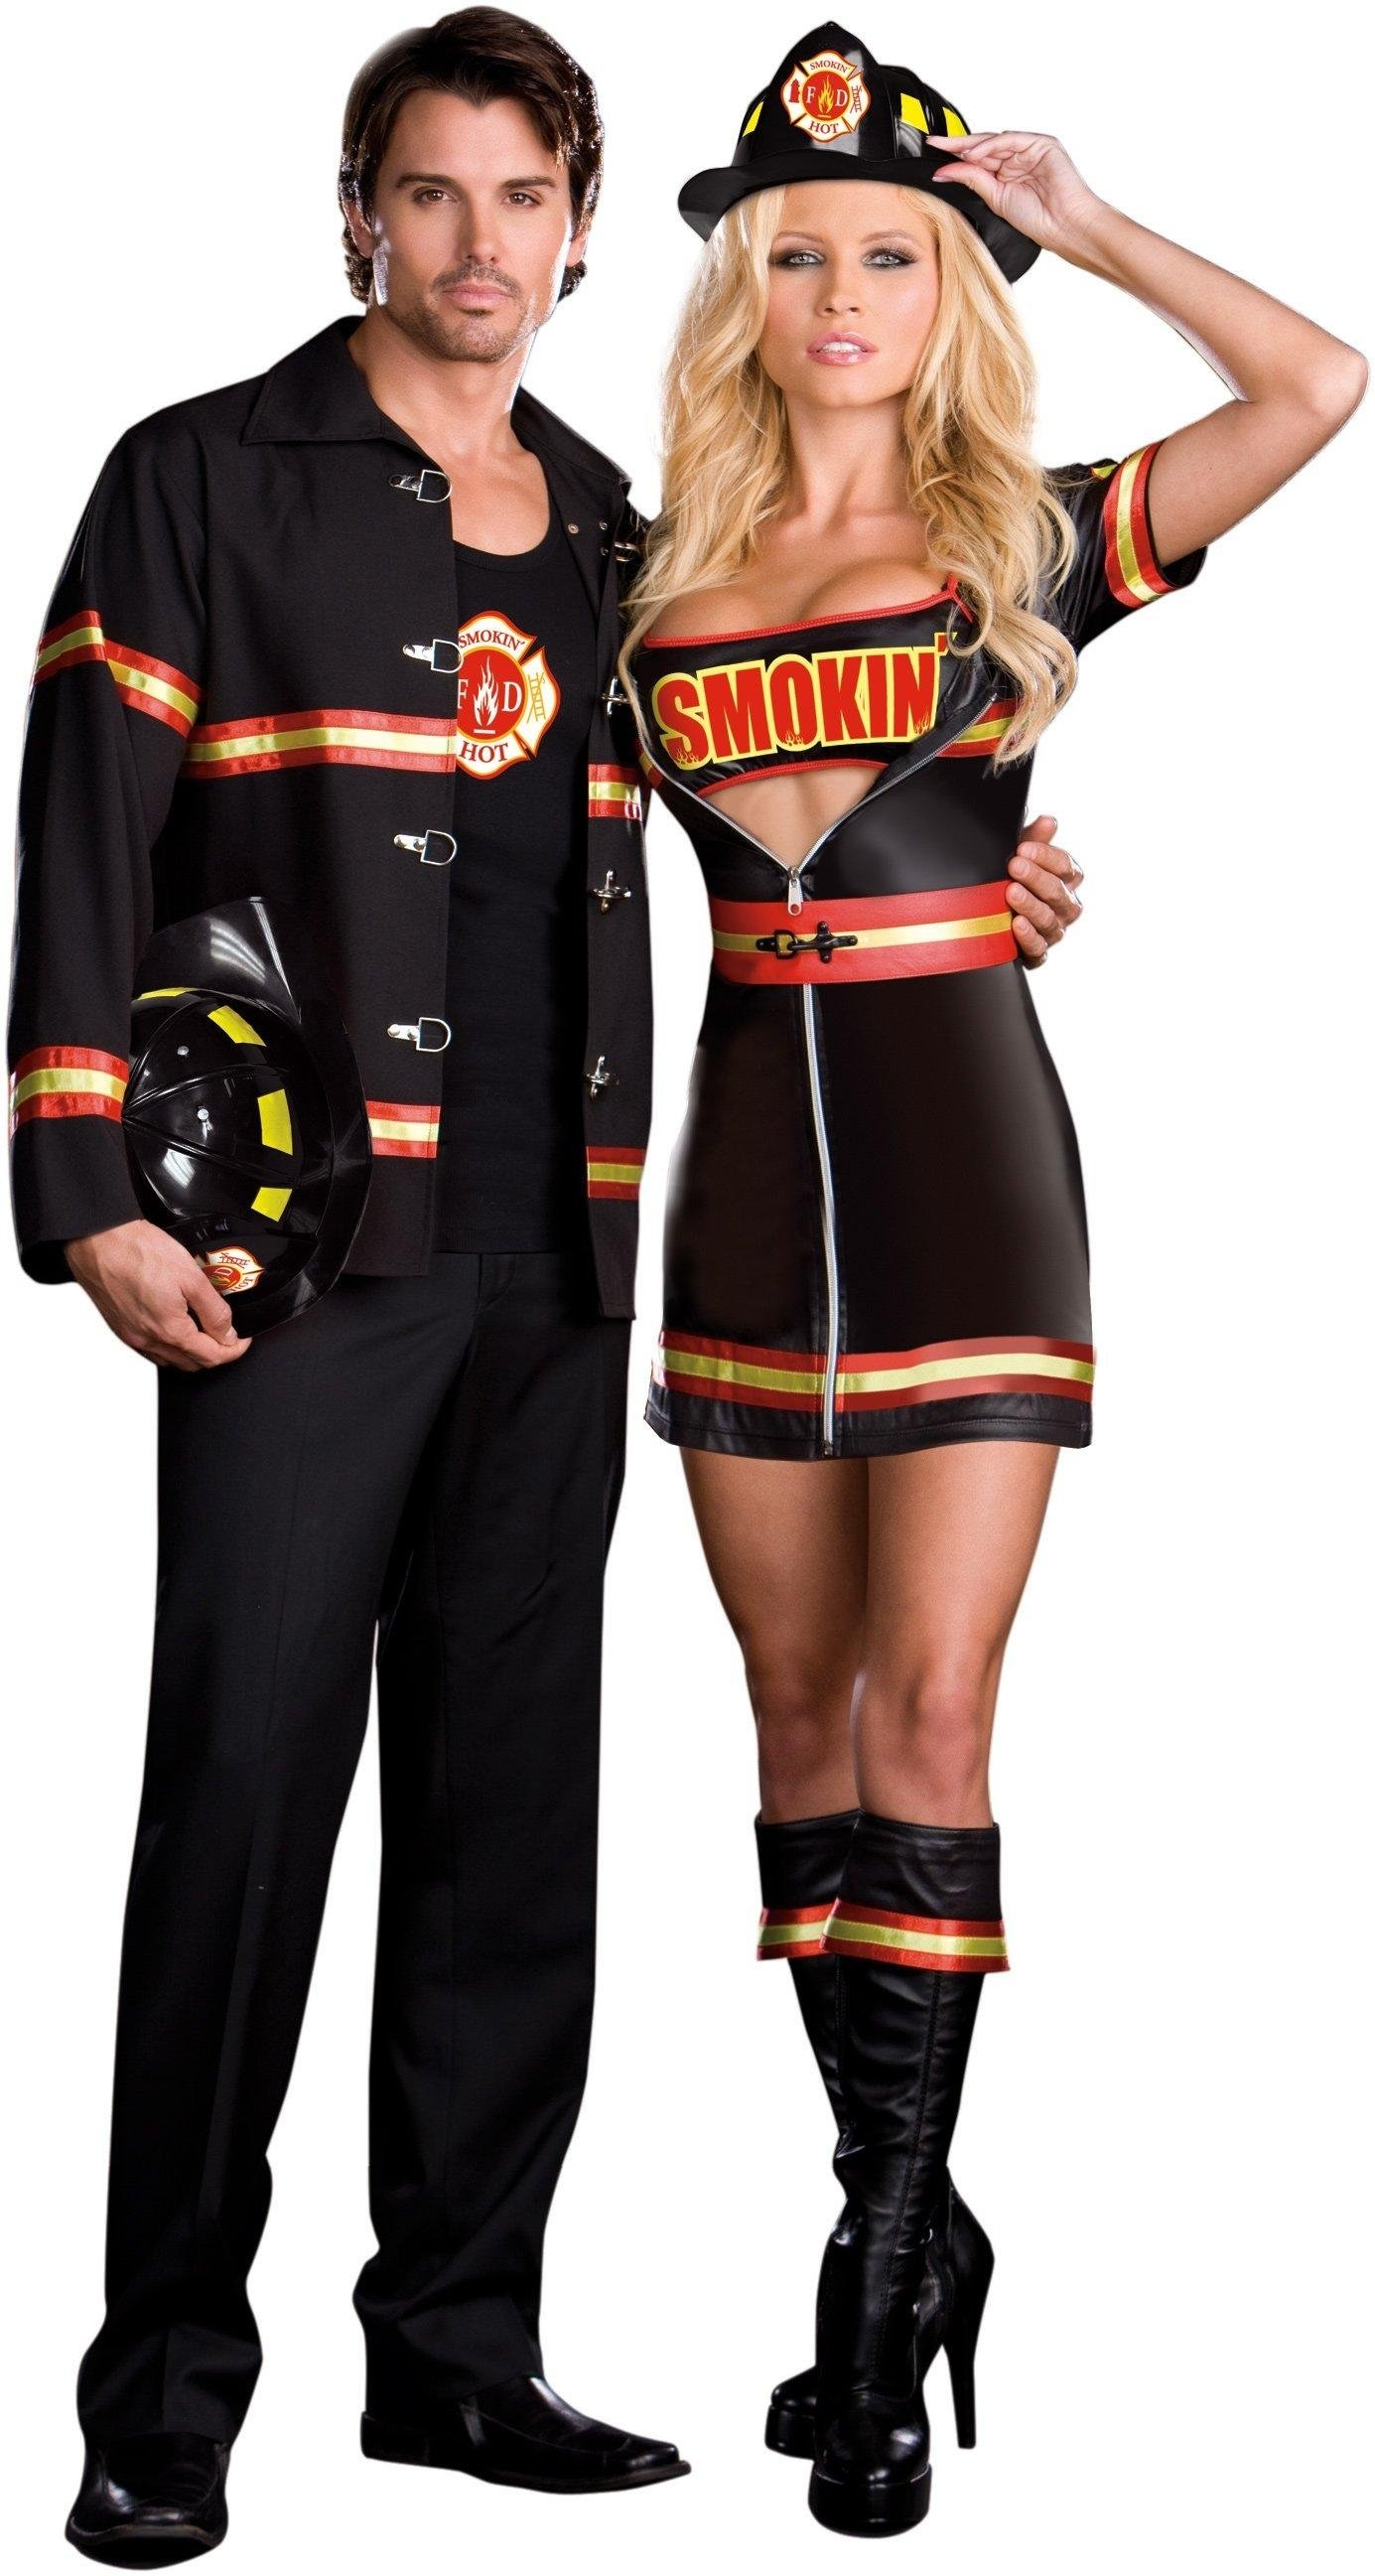 10 Stylish Good Costume Ideas For Couples 35 couples halloween costumes ideas inspirationseek 12 2020